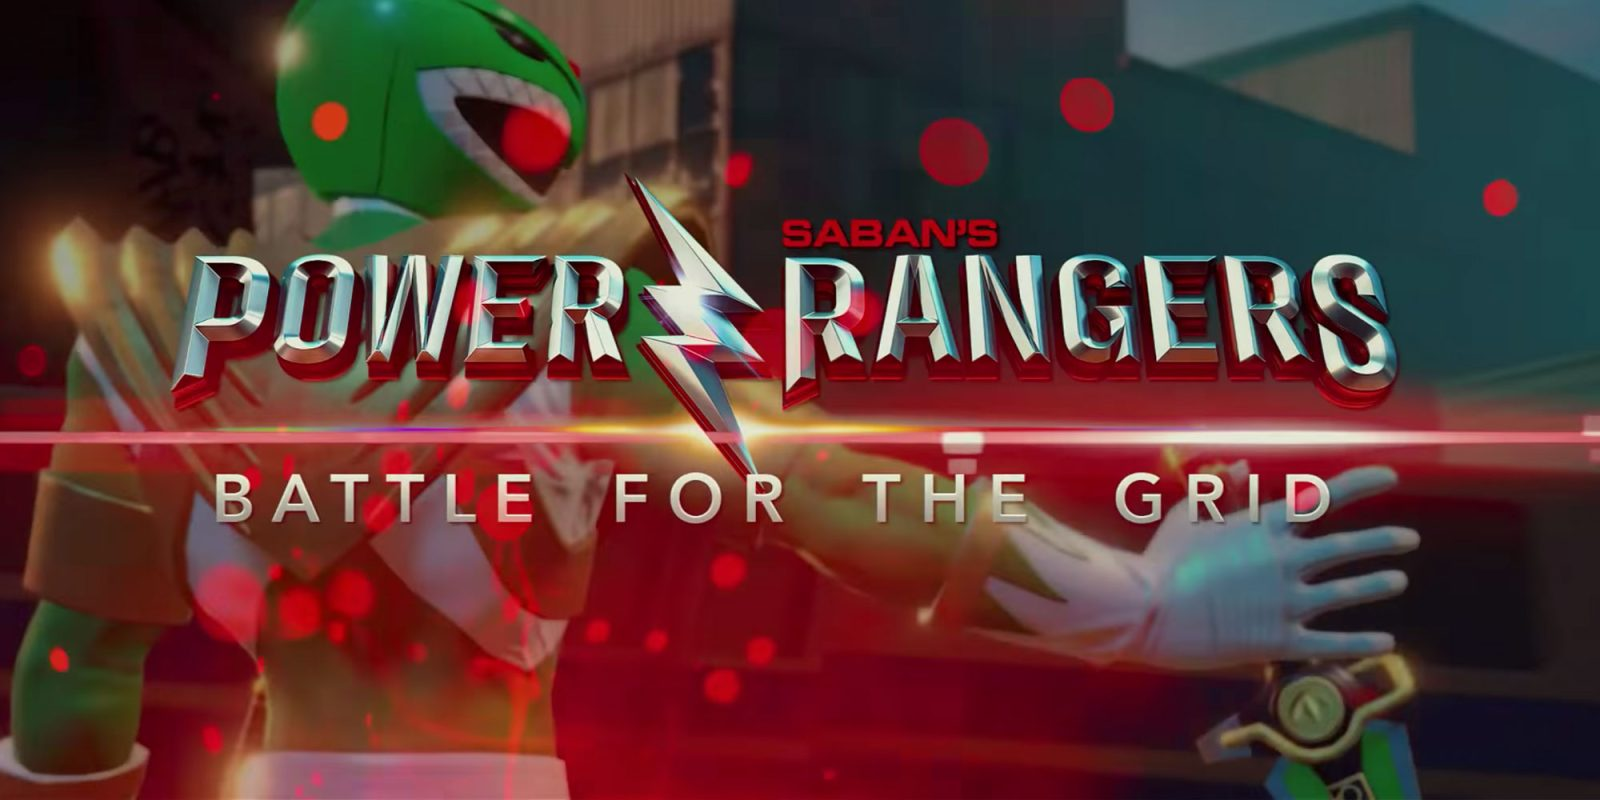 [Updated] New Power Rangers Game Battle For The Grid Trailer Leaks